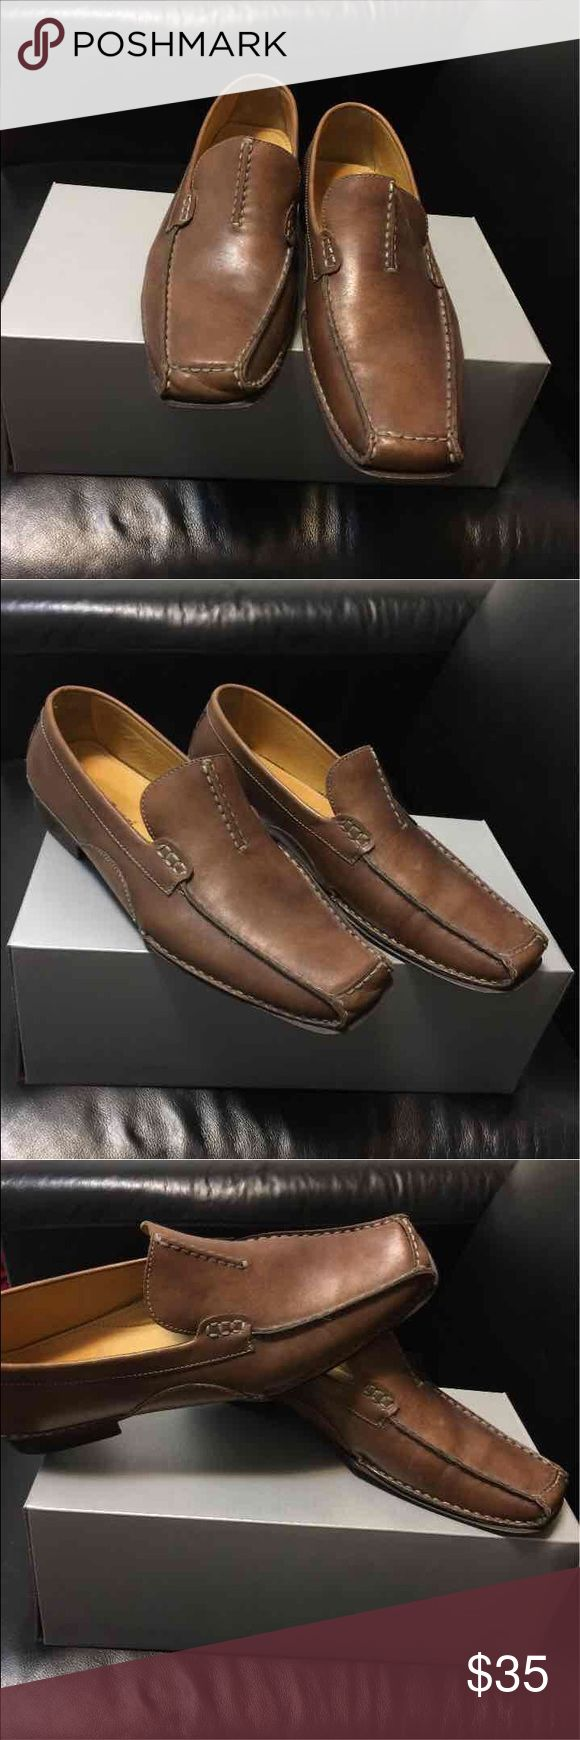 Bacco Bucci Slip On Bacco Bucci Slip On Size 9 in Brown Bacco Bucci Shoes Loafers & Slip-Ons